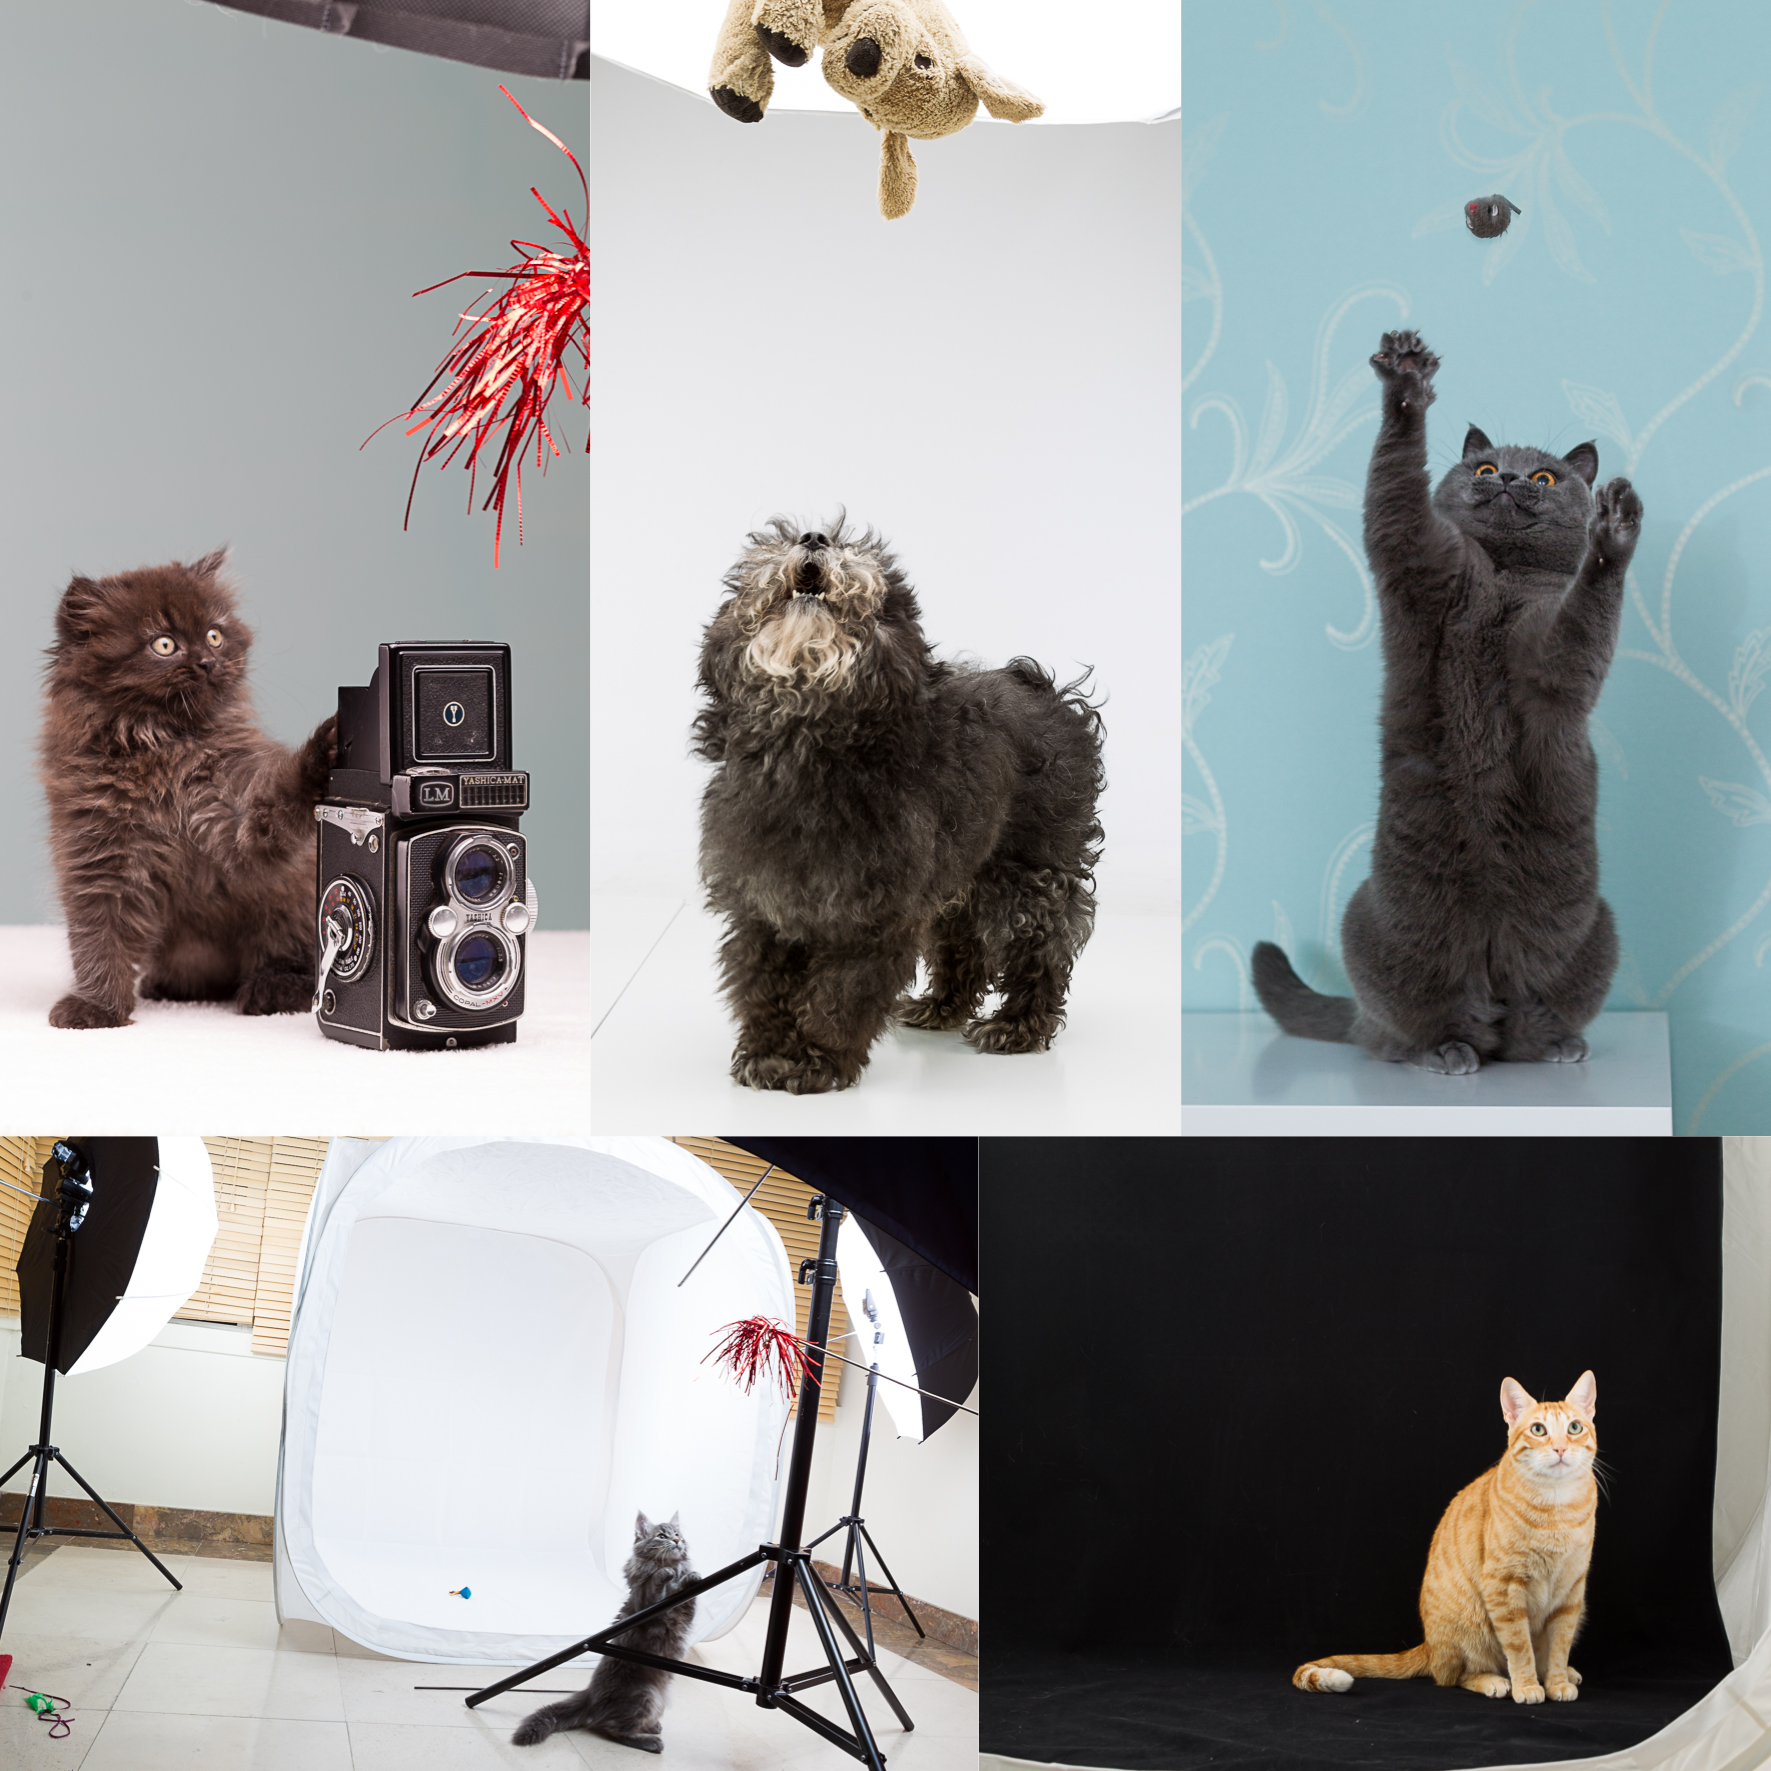 Using studio lighting in Pet Photography